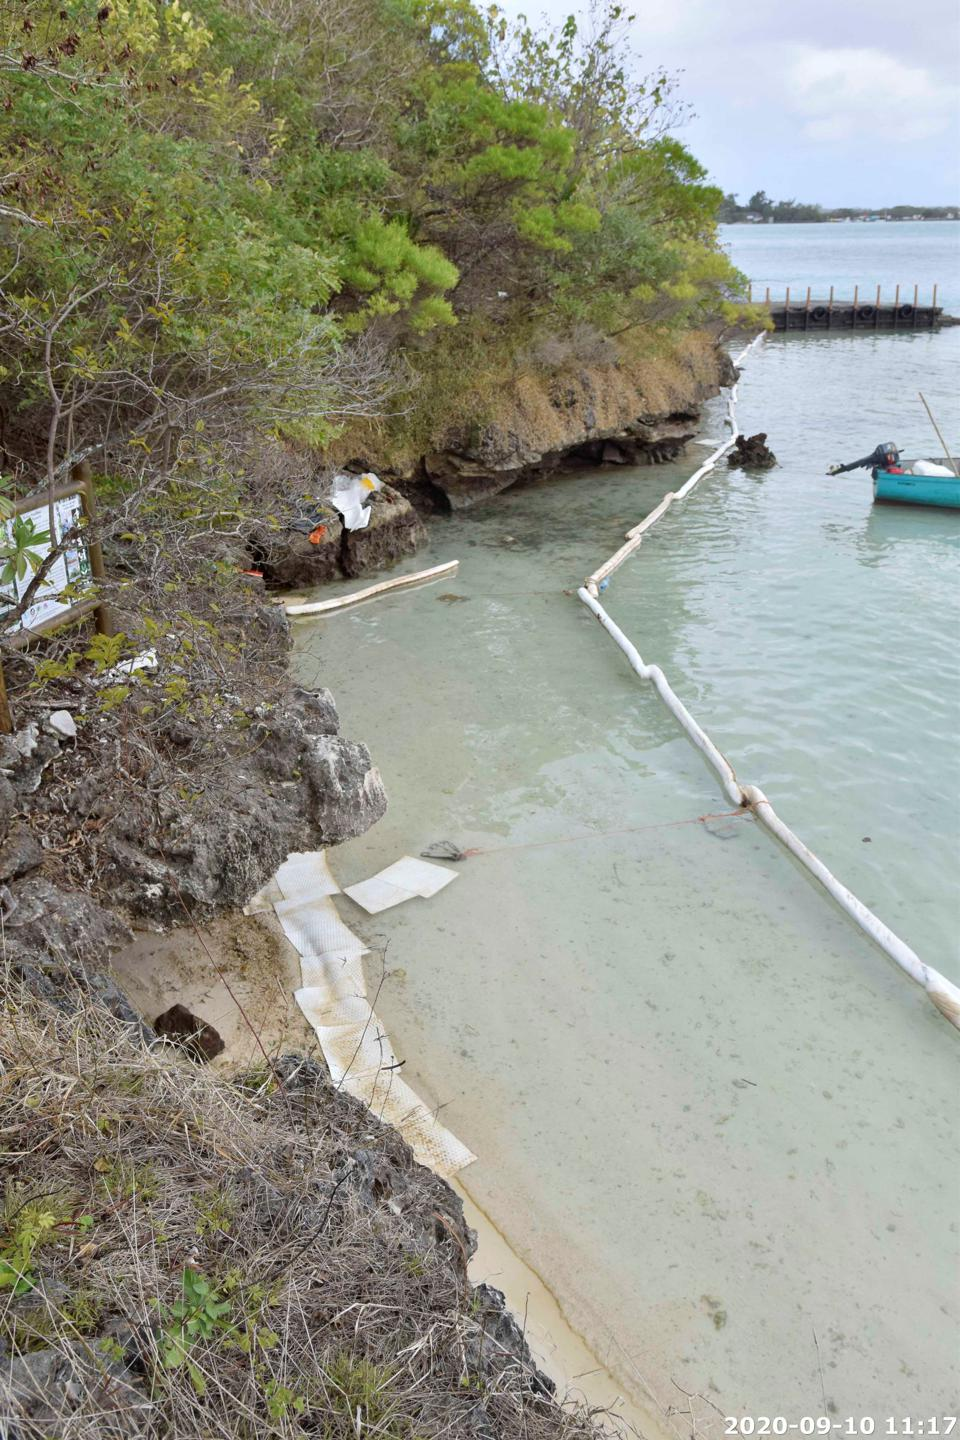 10 Sep 2020: a secondary barrier was placed around the coast of Ile aux Aigrettes during the clean up operations to prevent oil being washed back into the lagoon and causing pollution elsewhere.